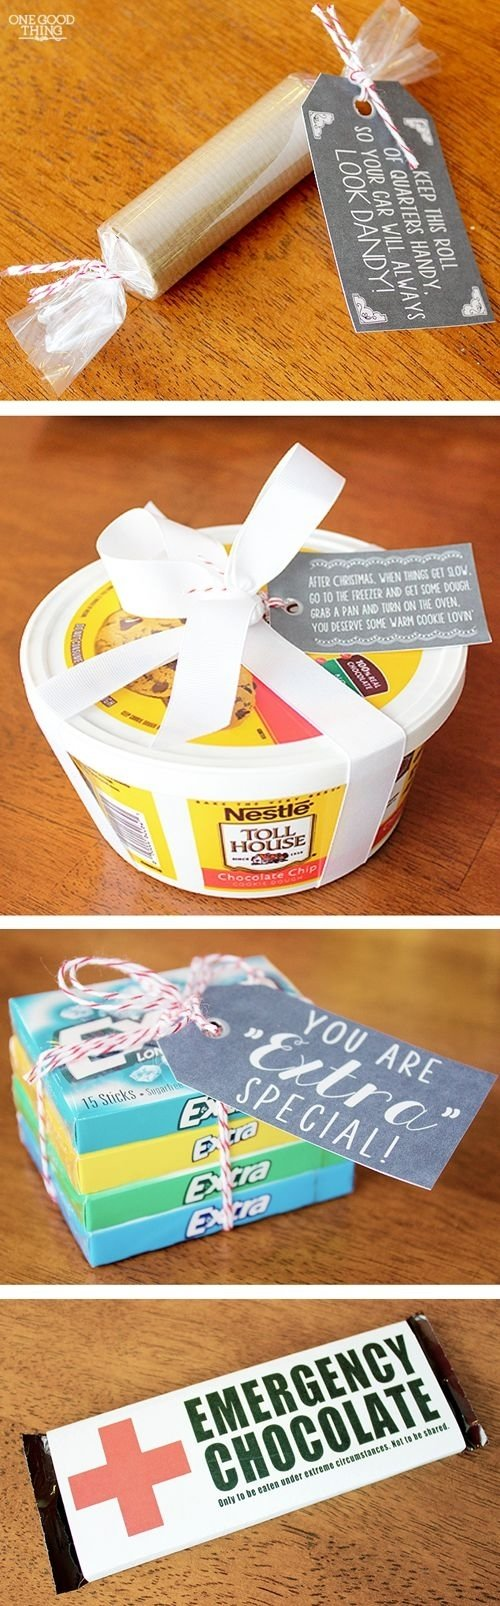 10 Most Recommended Creative Gift Ideas For Wife 90 best play on words gift ideas images on pinterest gift ideas 1 2021